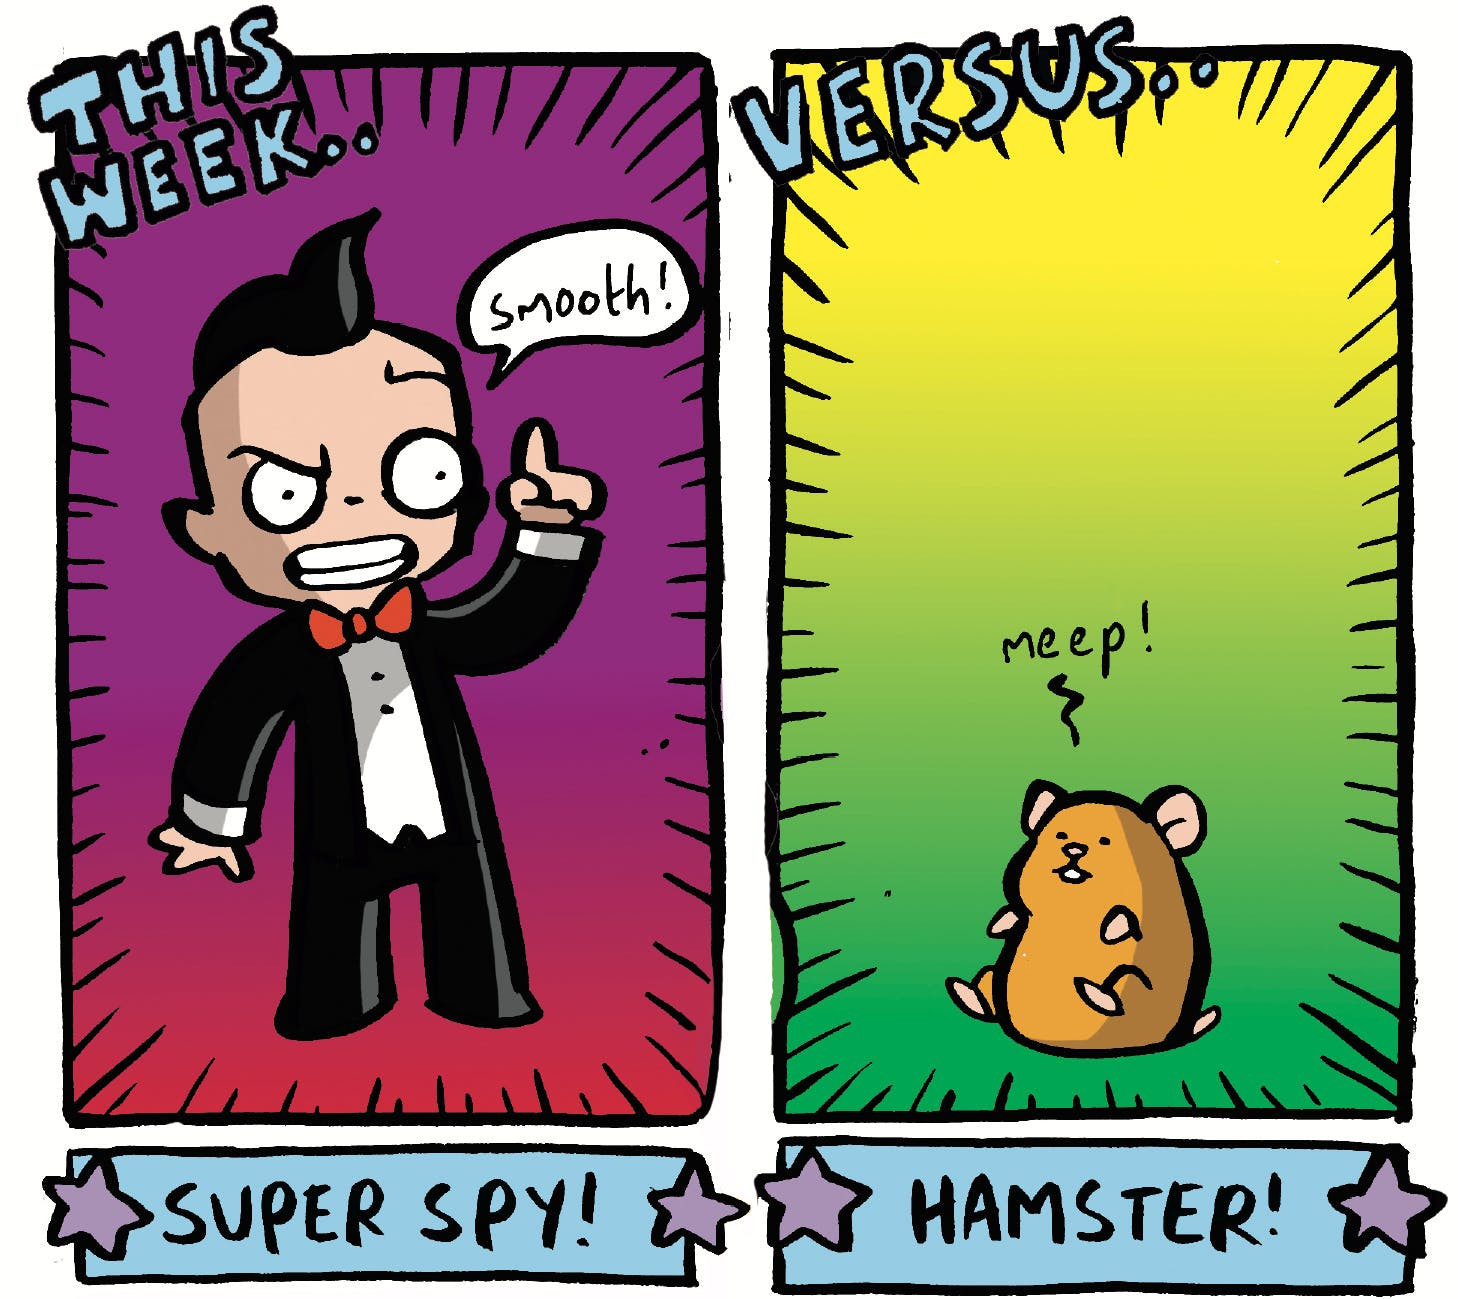 Arena of Awesome - Spy vs Hamster